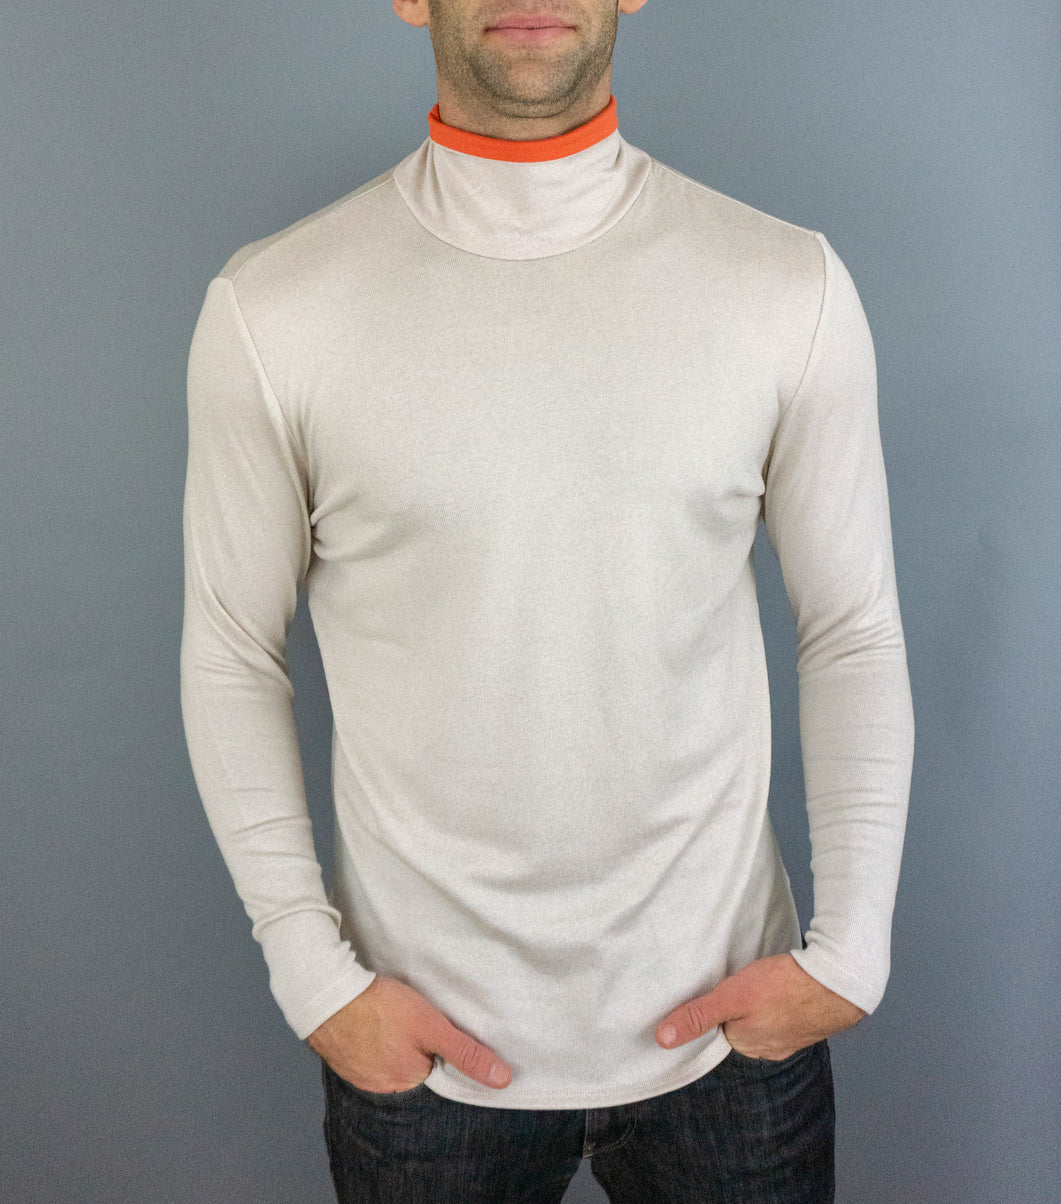 The Turtle Puppy - Mens Turtleneck - Oyster/Orange